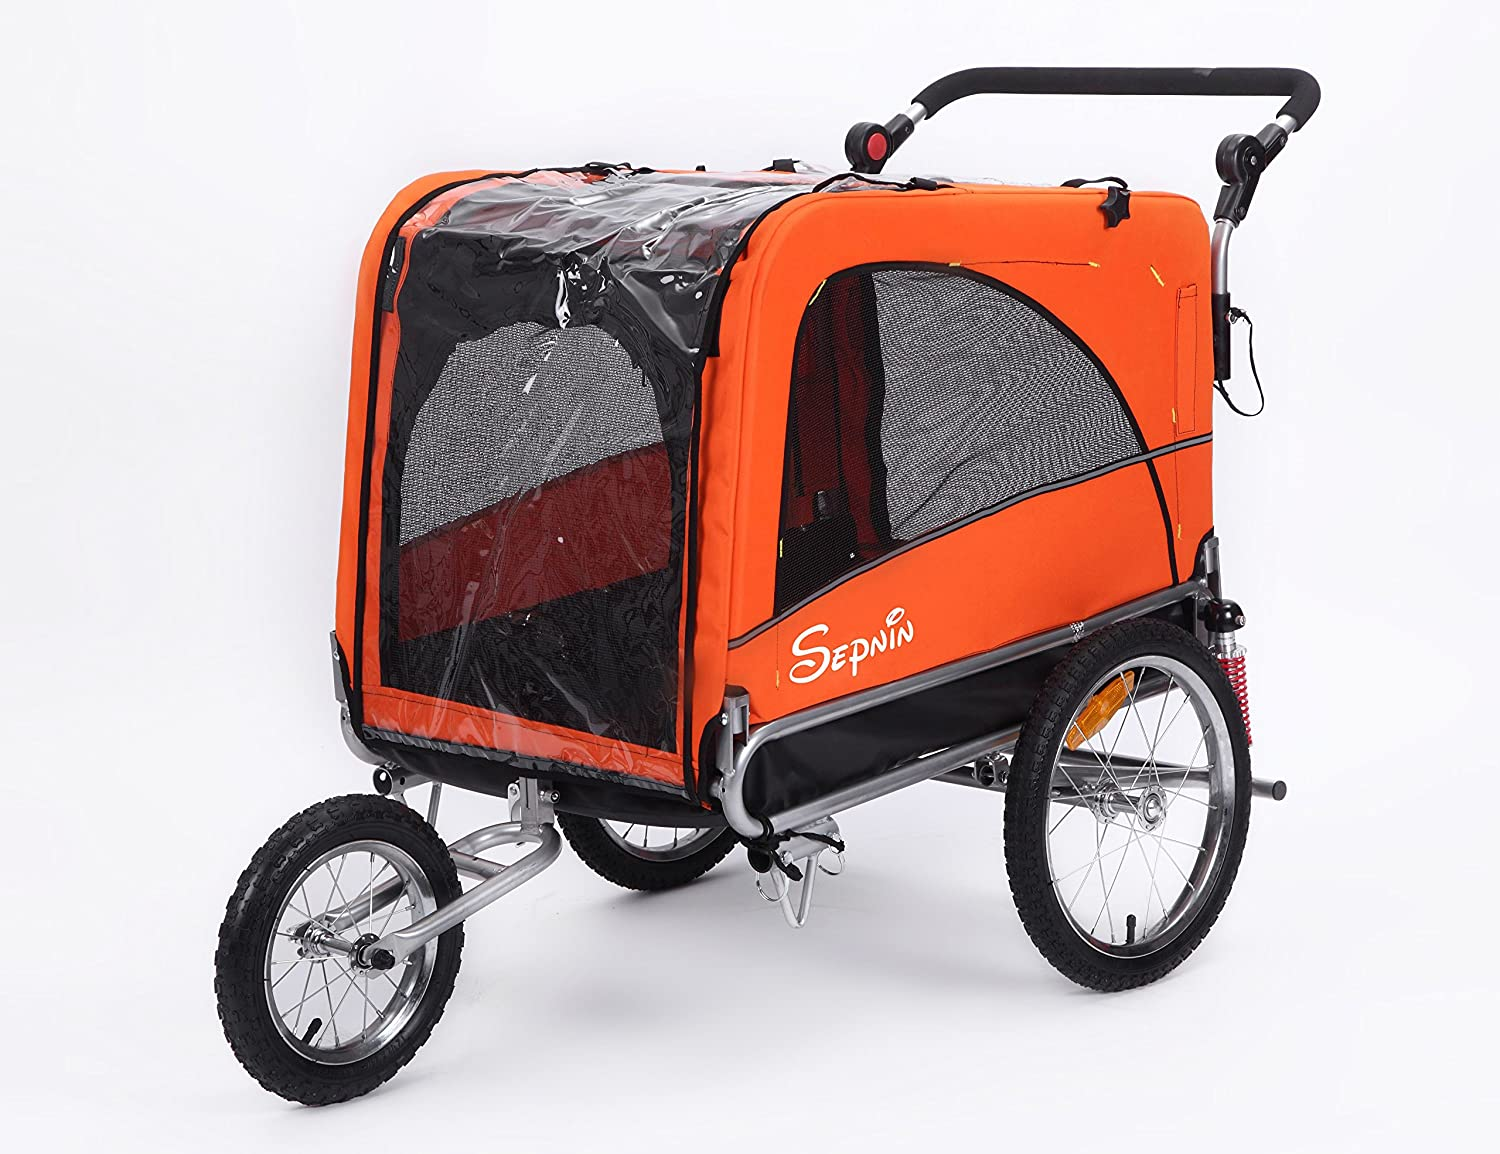 Sepnine 3 in 1 Luxury Large Sized Bike Trailer Bicycle Pet Trailer/Jogger/Dog Cage with Suspension 10308